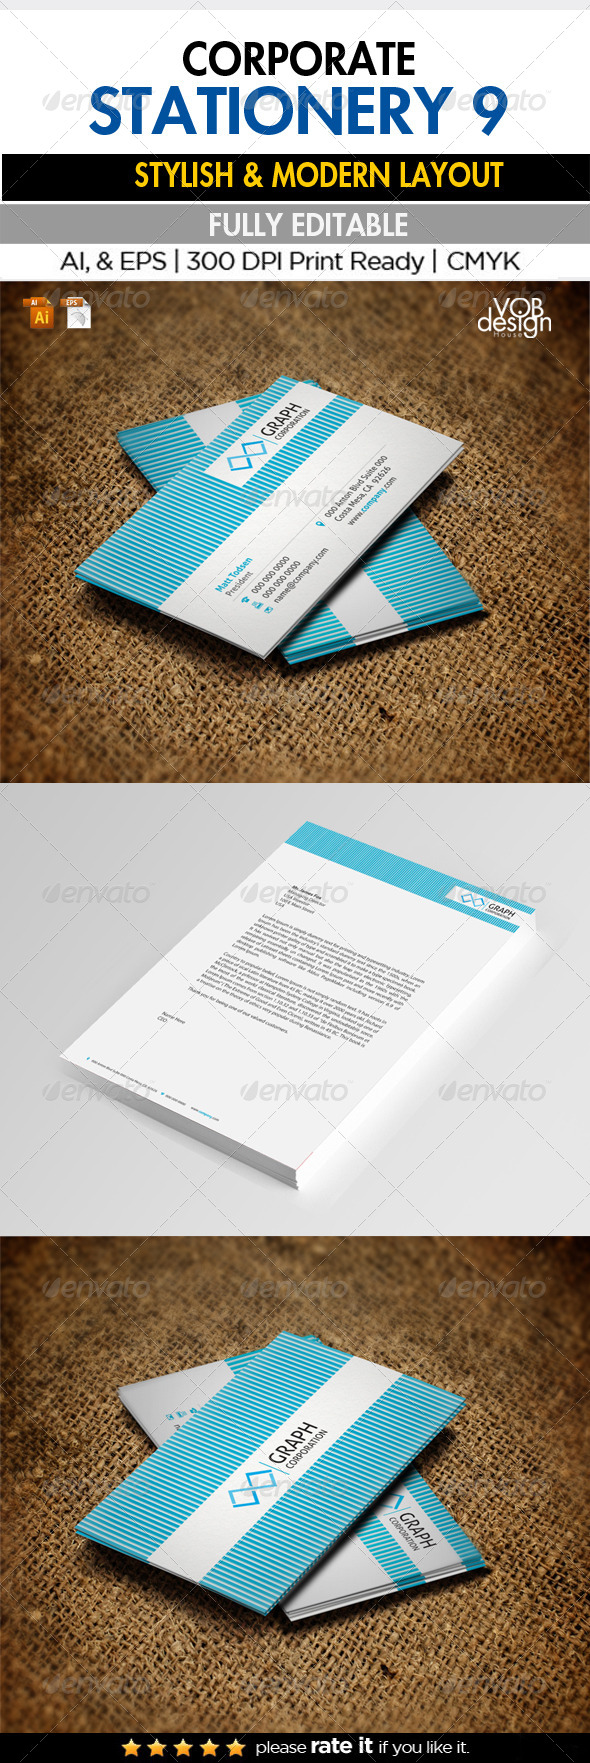 Corporate Stationery 9